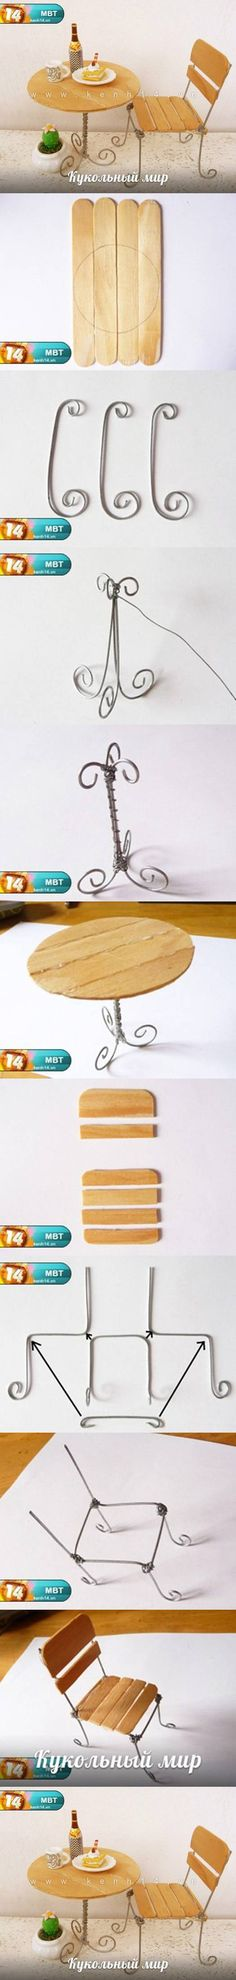 DIY Popsicle Stick Desk and Chair DIY Projects | UsefulDIY.com